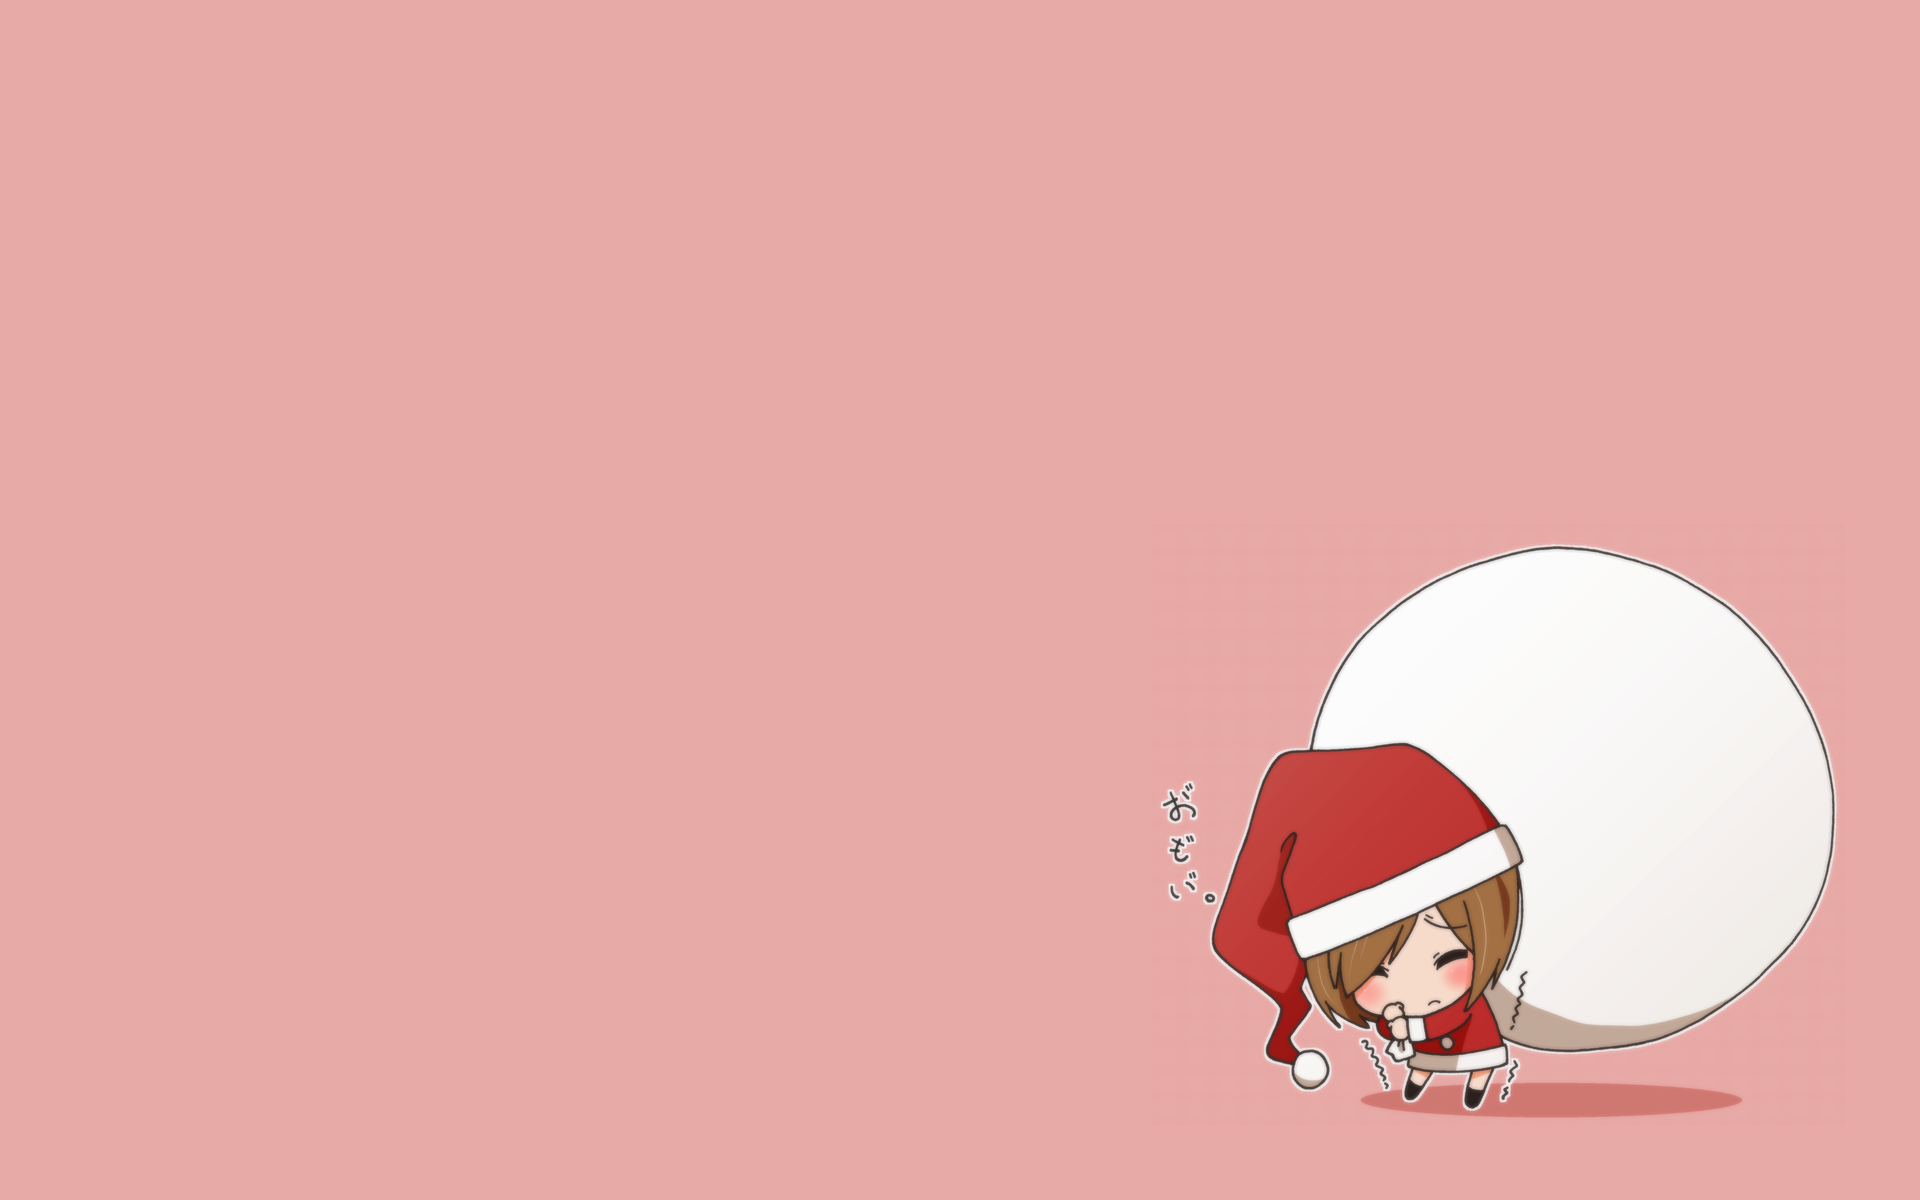 Anime Chibi Christmas wallpaper   296529 1920x1200